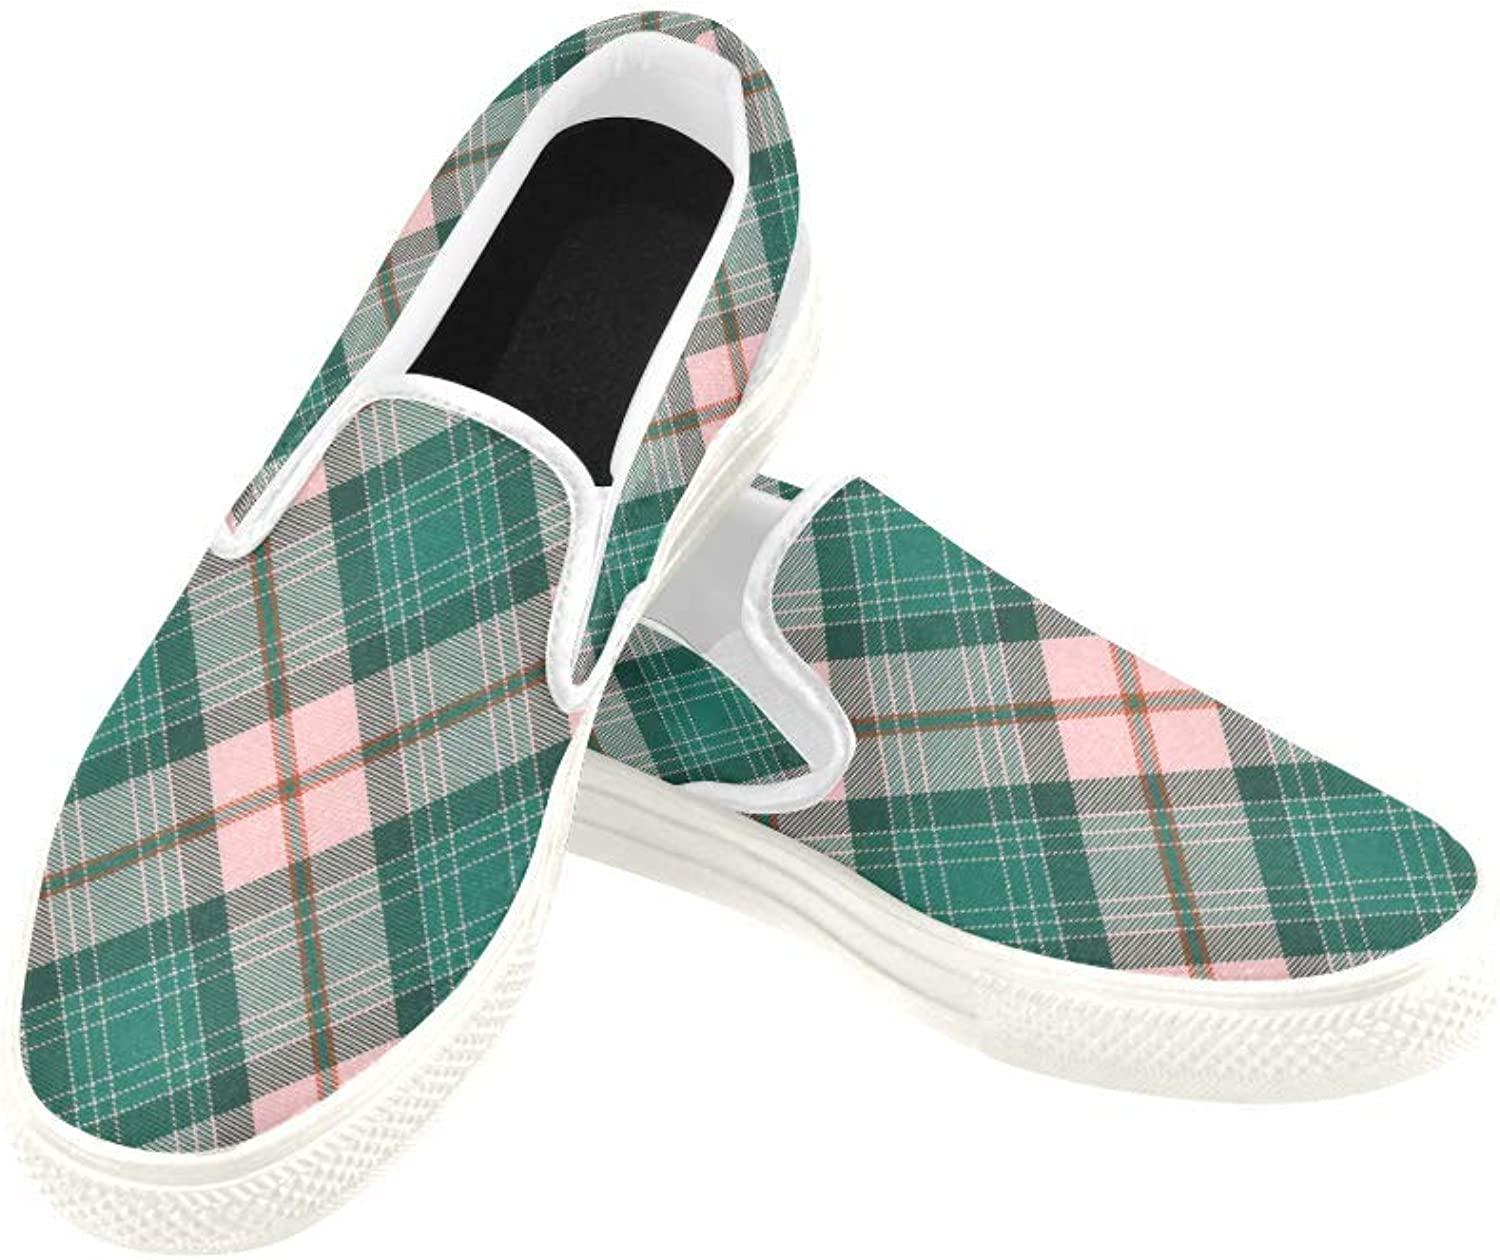 InterestPrint Womens Slip On Canvas shoes Loafers Purple Plaid Girls Classic Casual Sneakers Flats